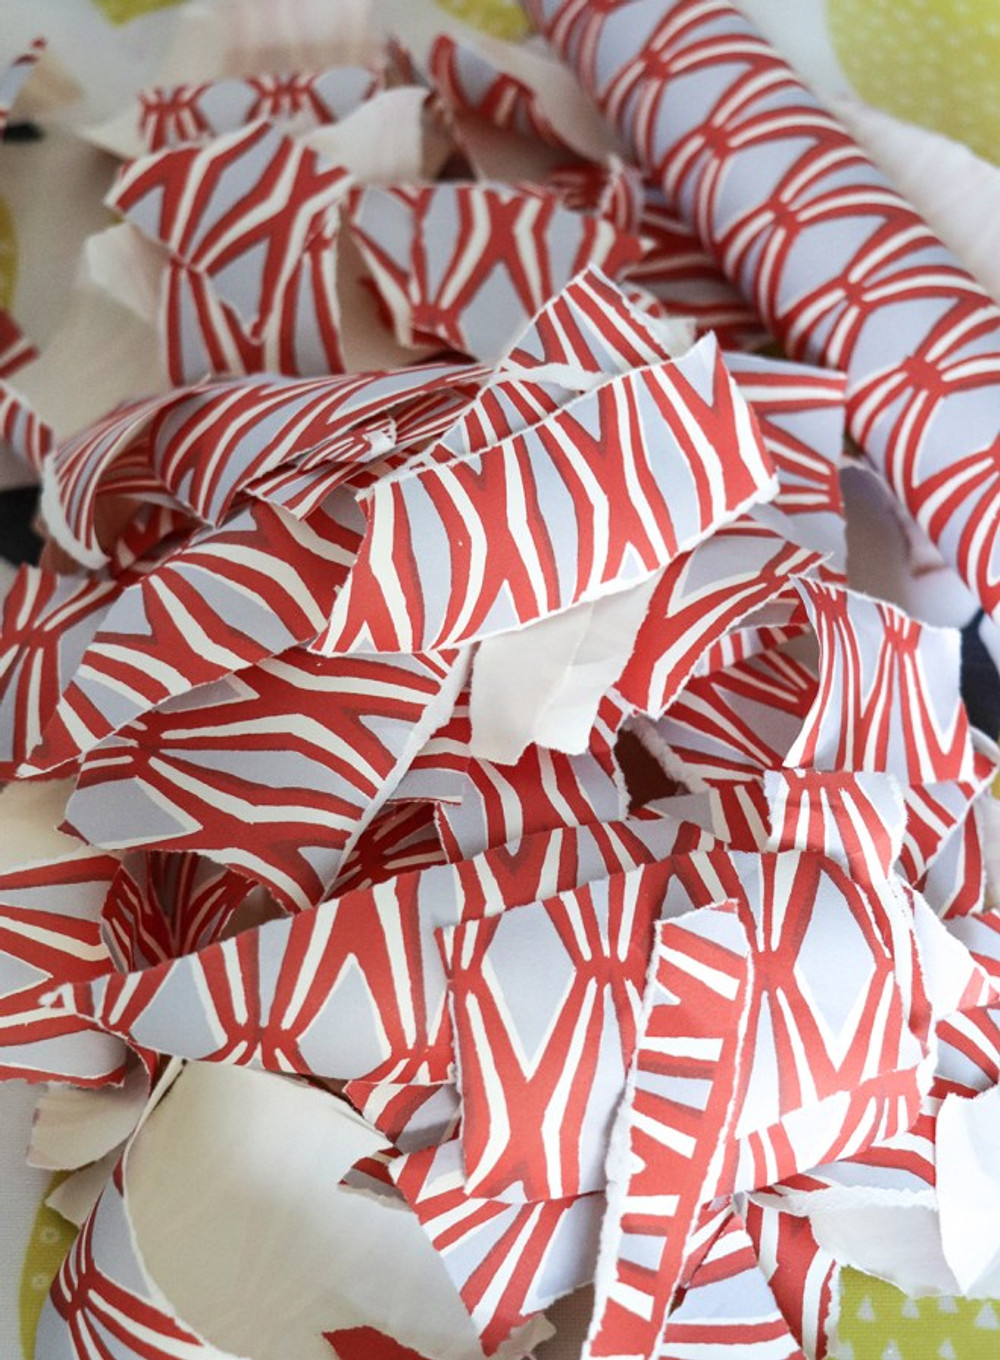 Colourful wrapping paper strips for making a handmade picture frame pin-board